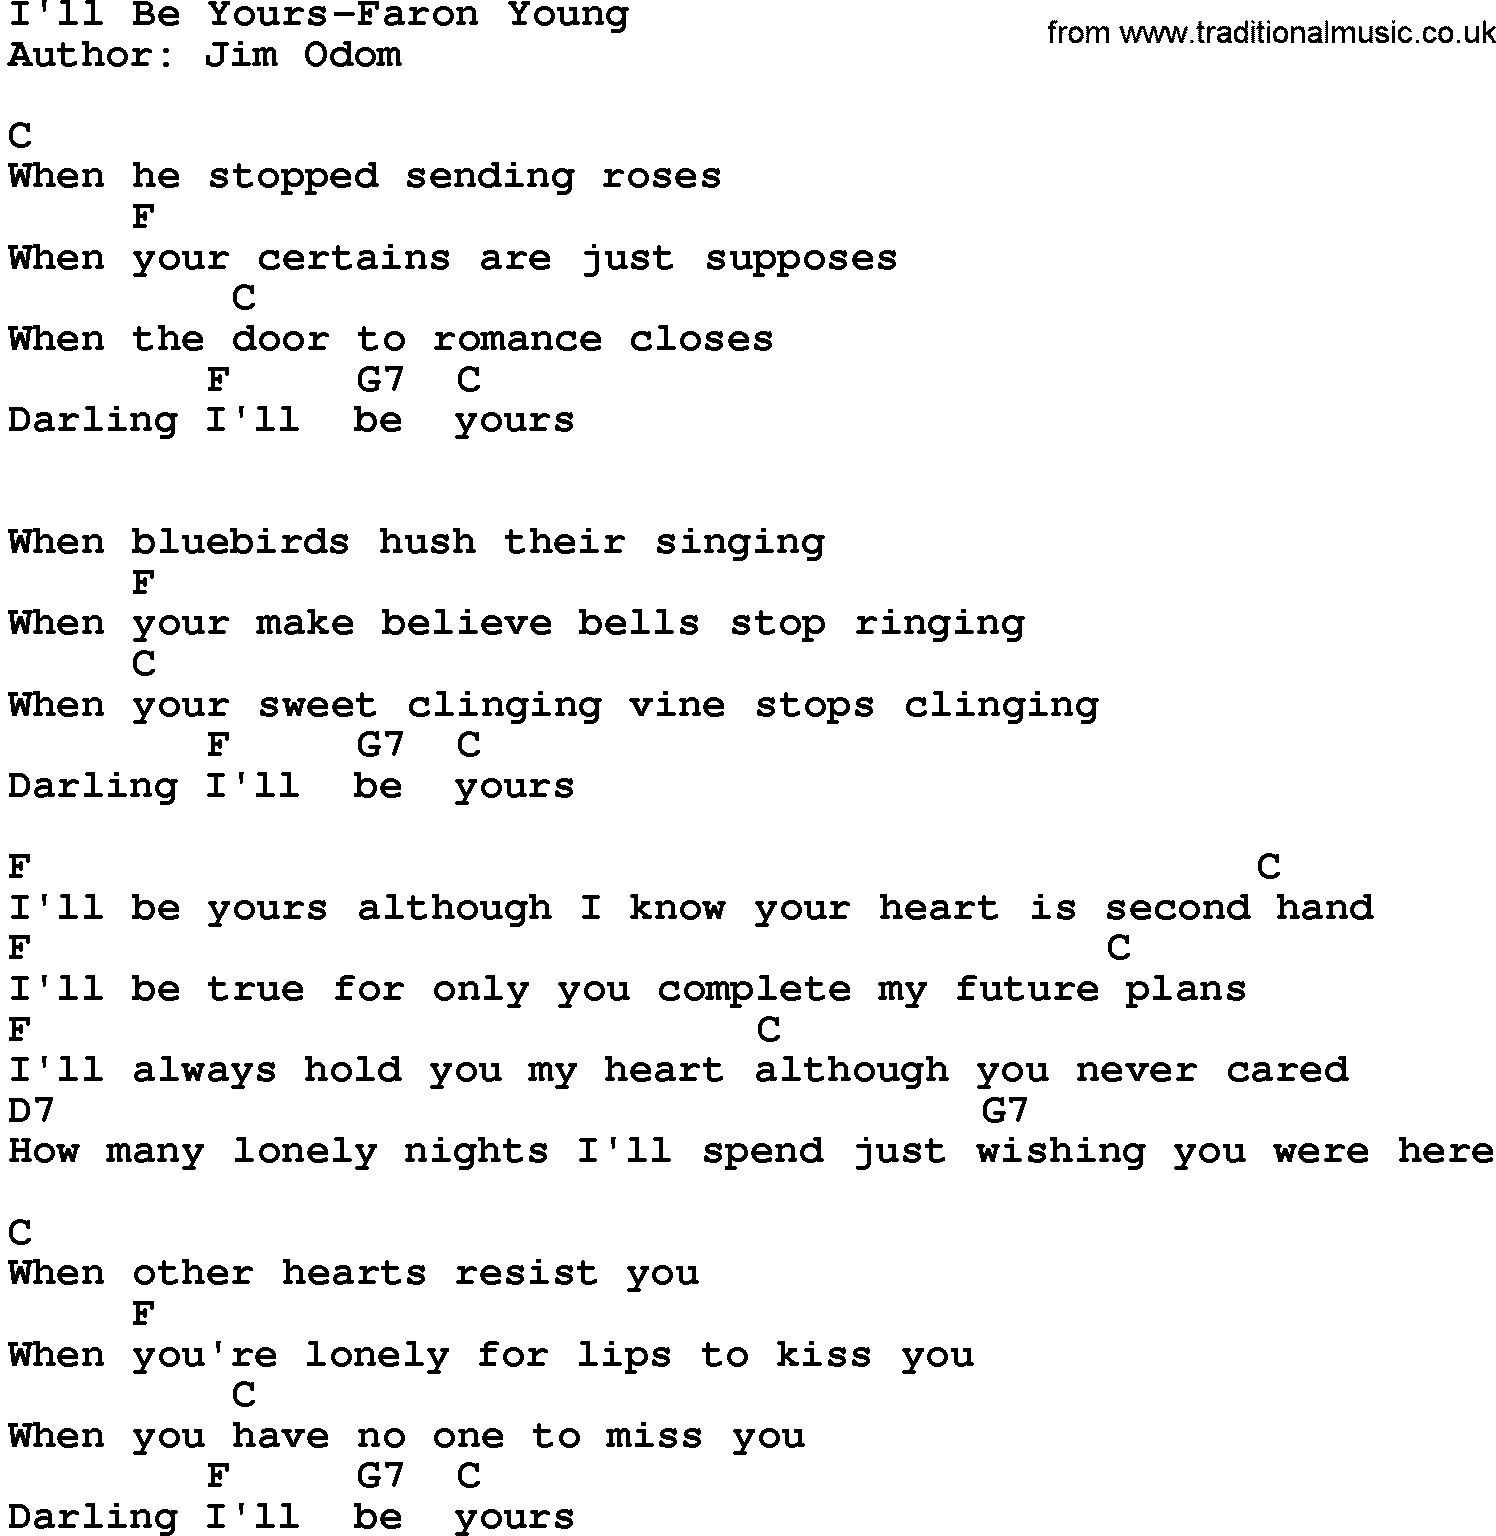 Country Music:I'll Be Yours-Faron Young Lyrics And Chords